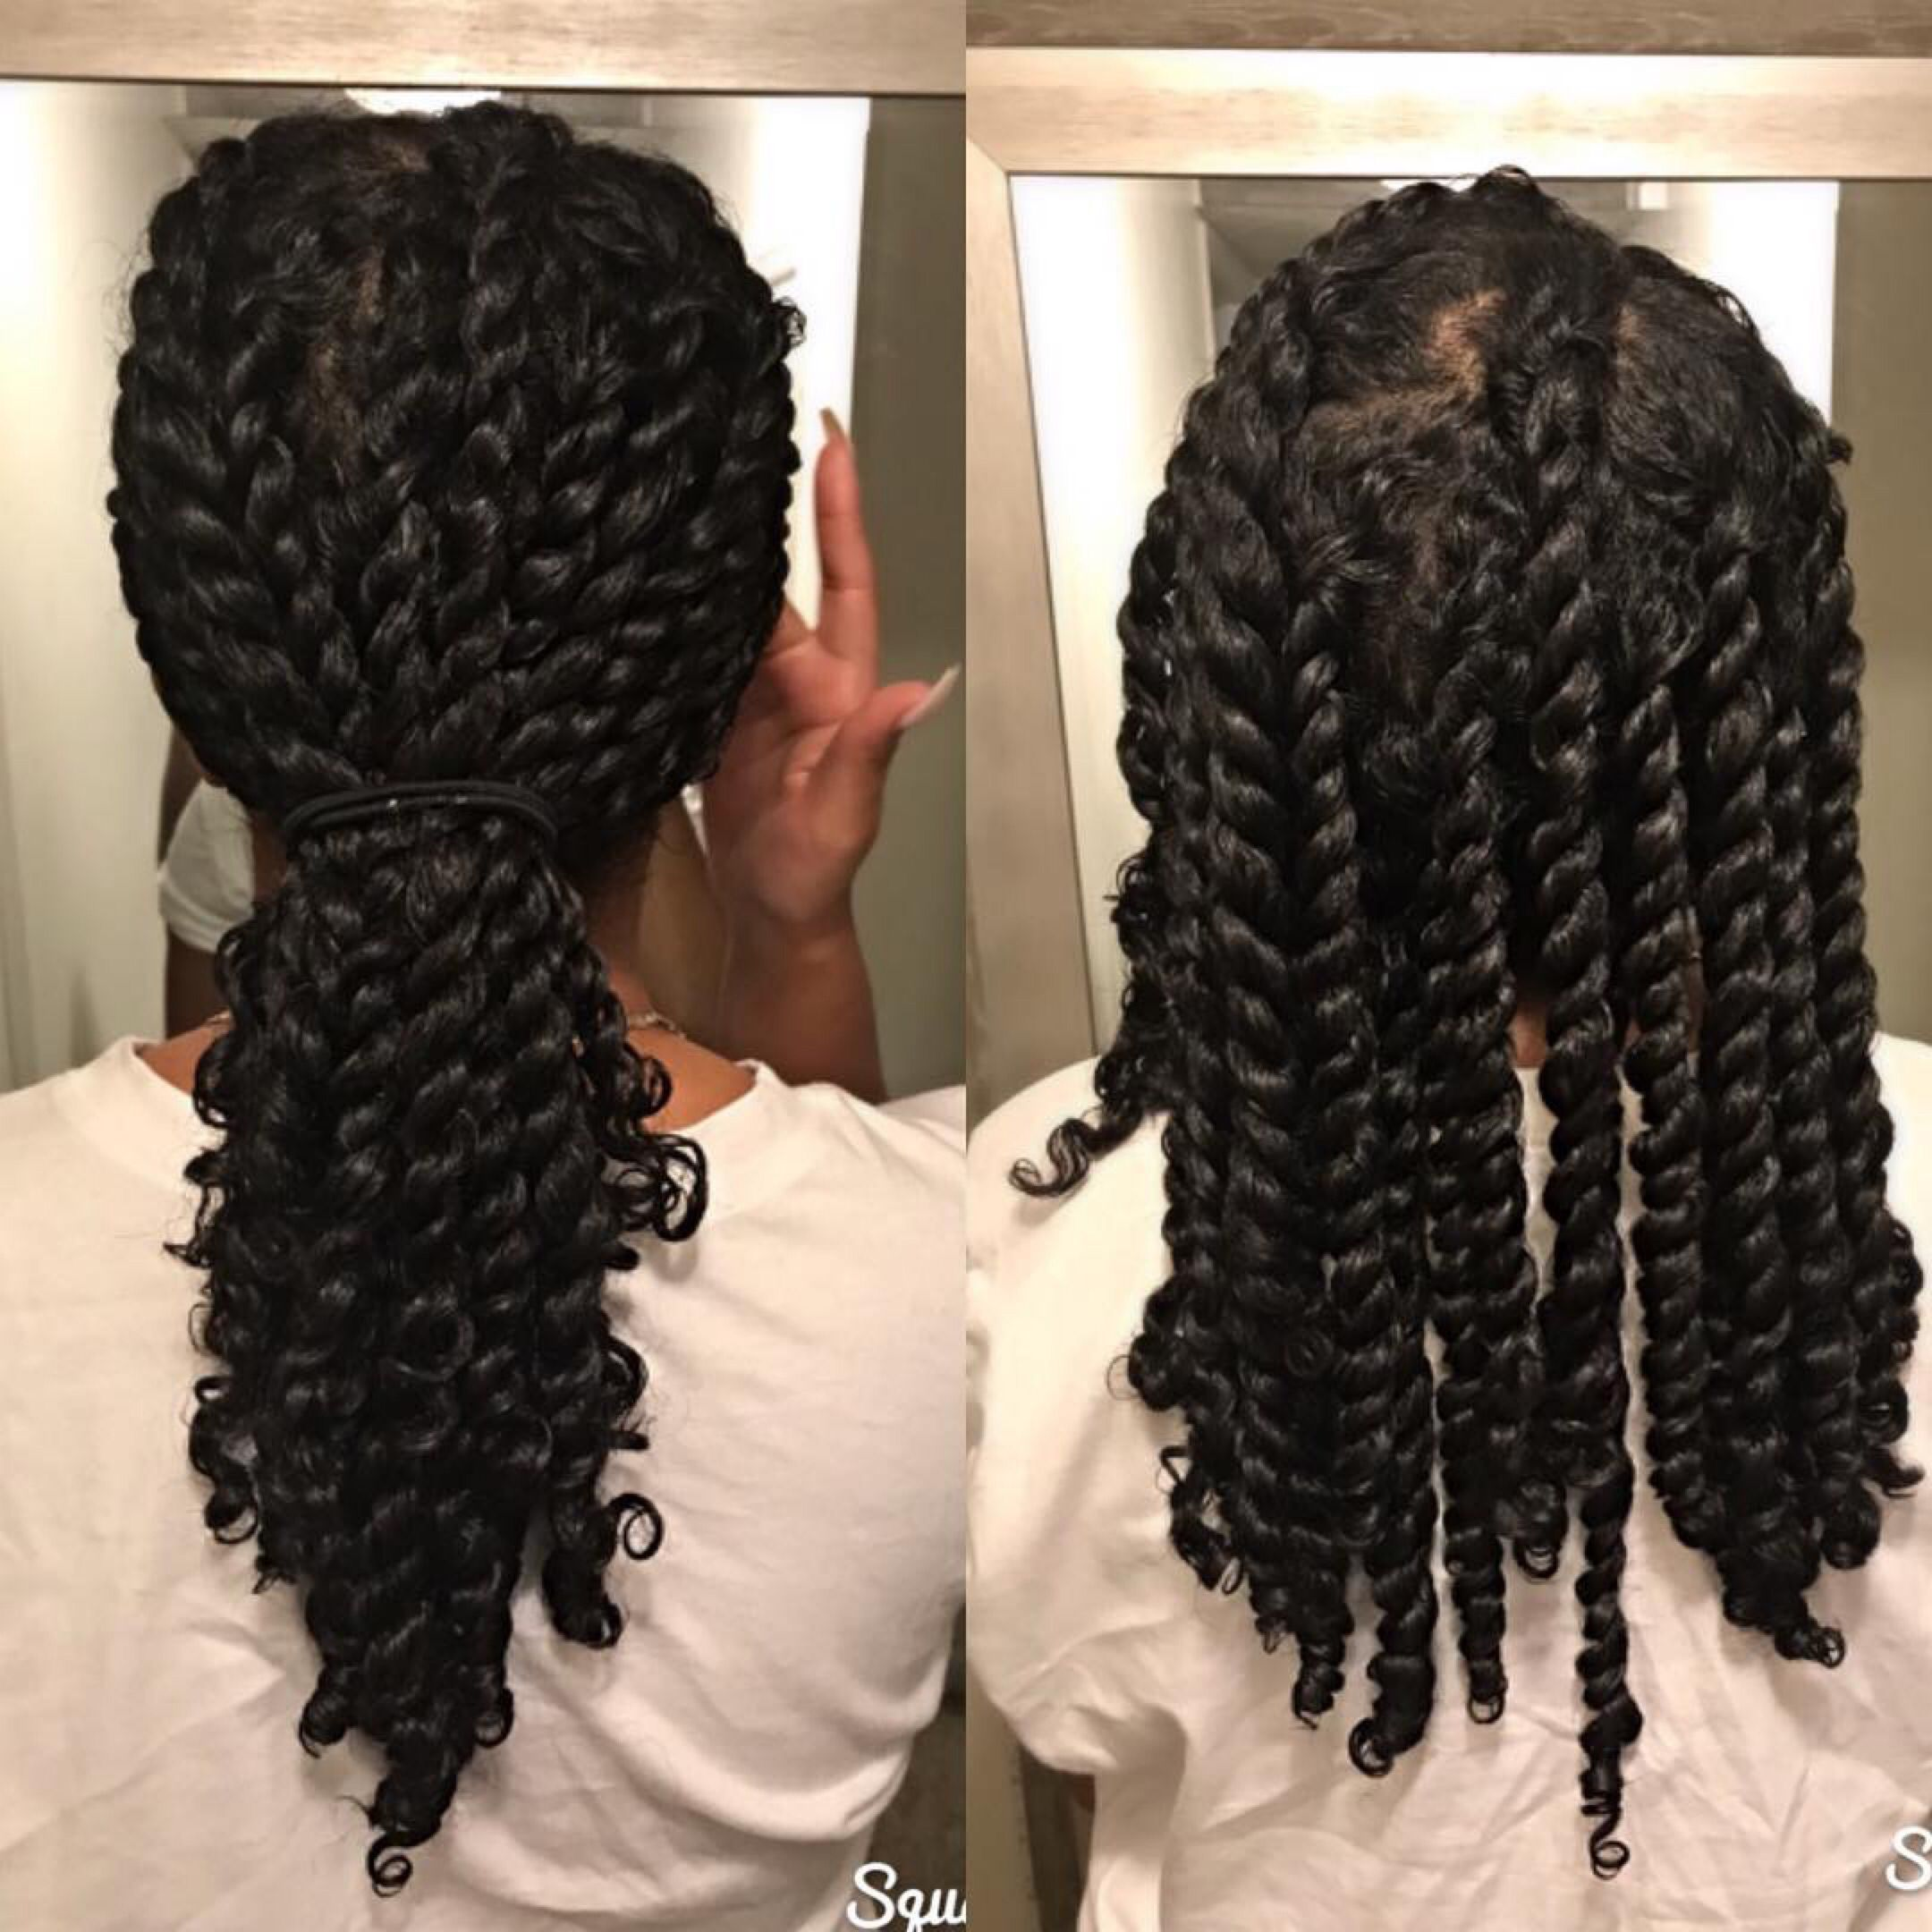 8 Super Cute Protective Styles For Winter Protective Hairstyles For Natural Hair Long Natural Hair Long Hair Styles